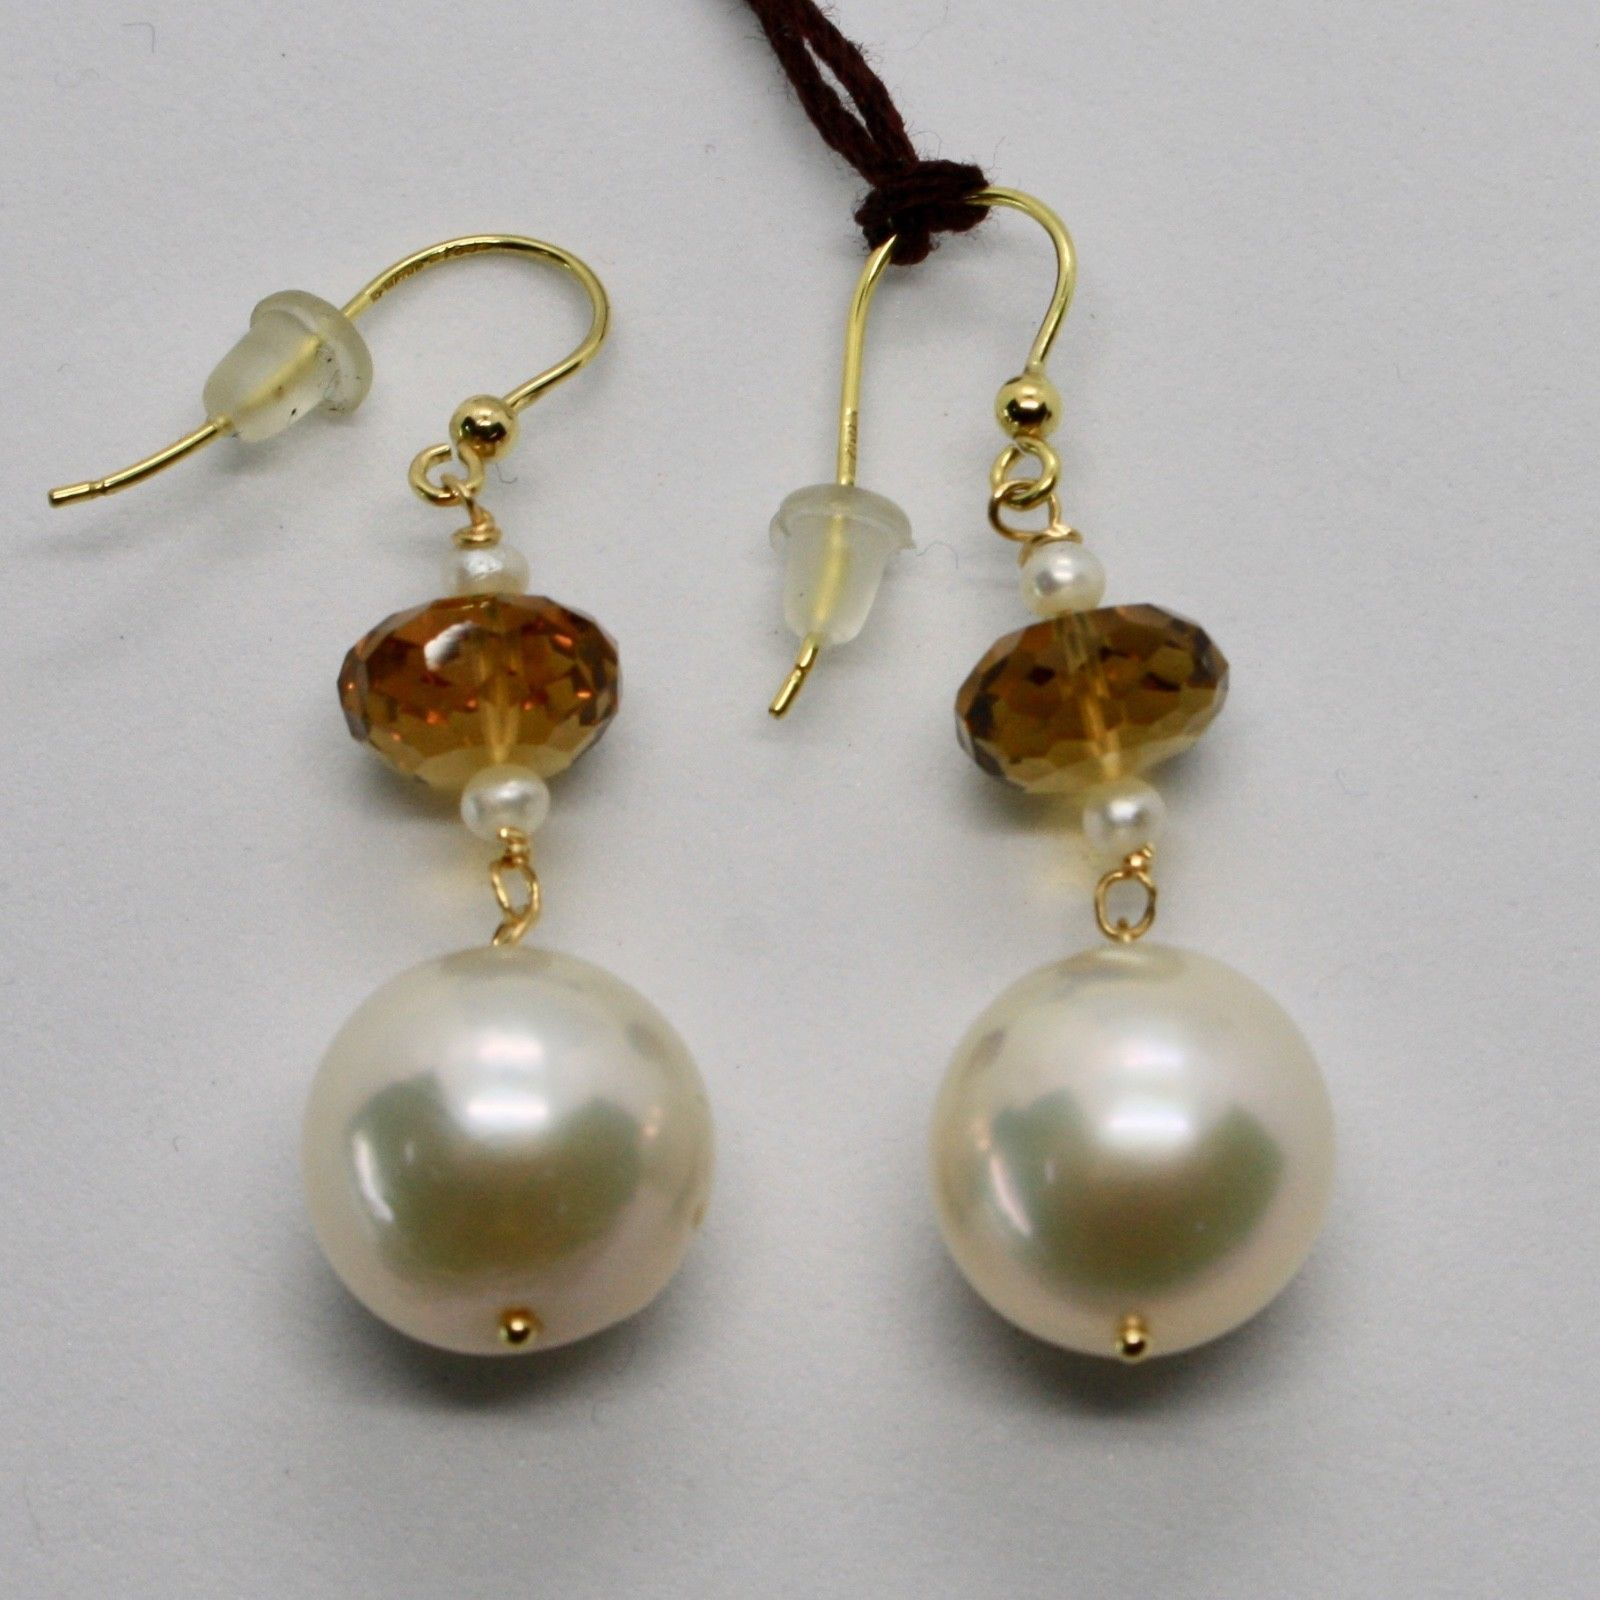 YELLOW GOLD EARRINGS 18K 750 PEARLS FRESHWATER AND QUARTZ BEER MADE IN ITALY